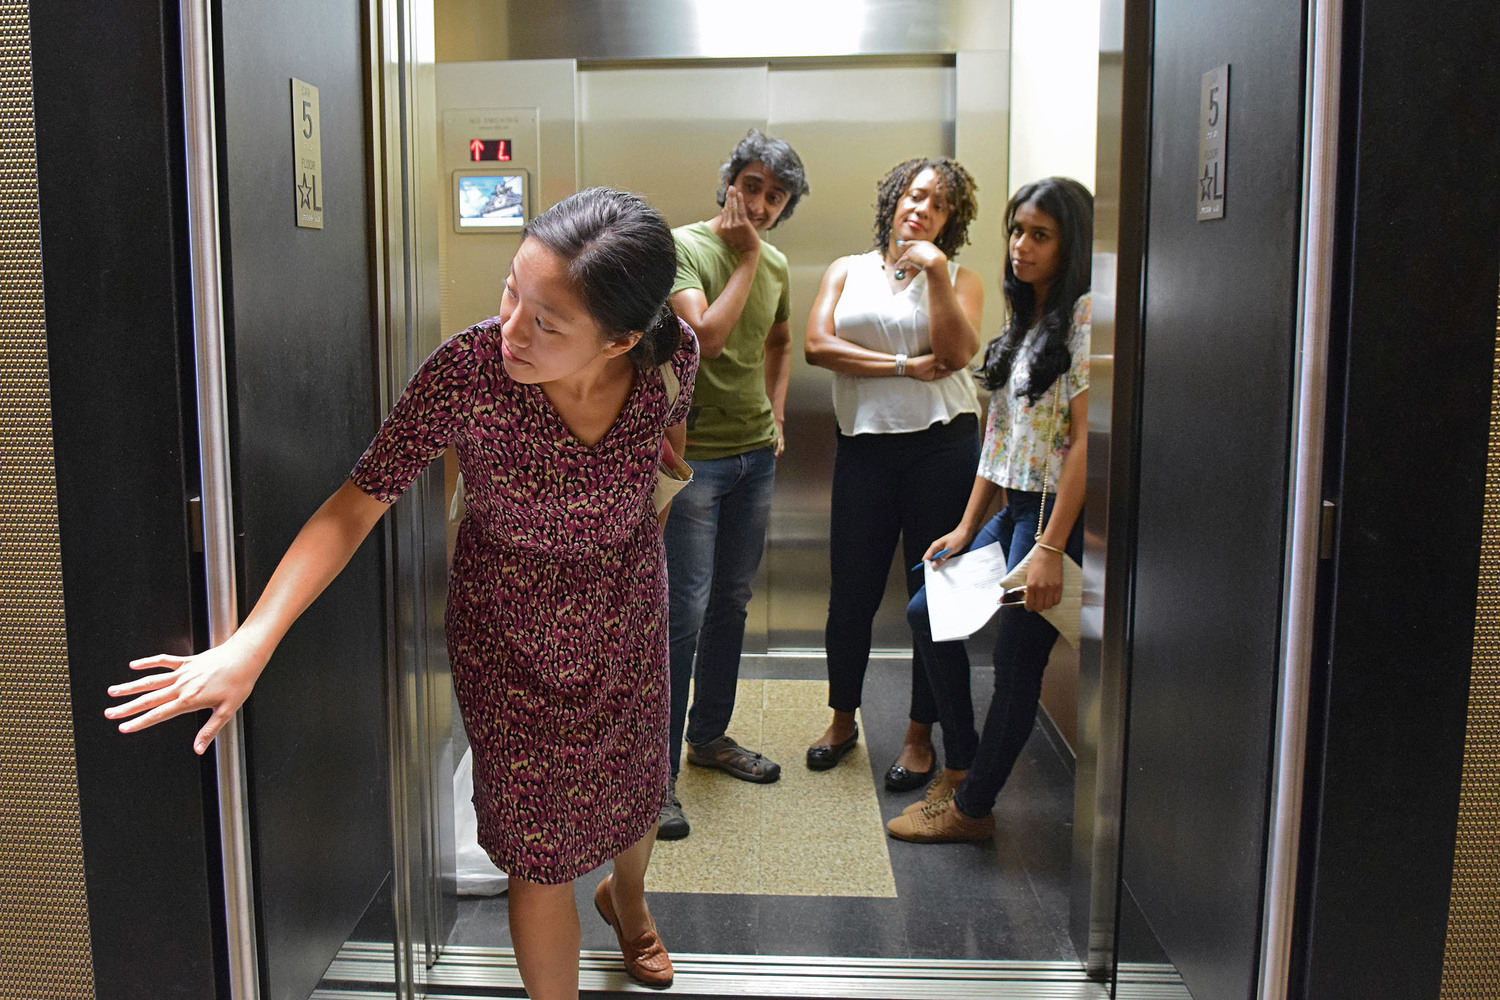 "Woman Holding Elevator Door While Other Passengers Wait Impatiently | You can use this photo for non-commercial purposes if you give credit, under this <a href=""https://creativecommons.org/licenses/by-nc/3.0/us/"" rel=""nofollow"">Creative Commons license</a>. For-profit media organizations also may use this, but as editorial content only (as illustrations for stories, for example, but not as advertising). Credit must read: Richard Yeh / WNYC  We'd love to know if you're using this photo - send us an email (jkeefe@wnyc.org)!"